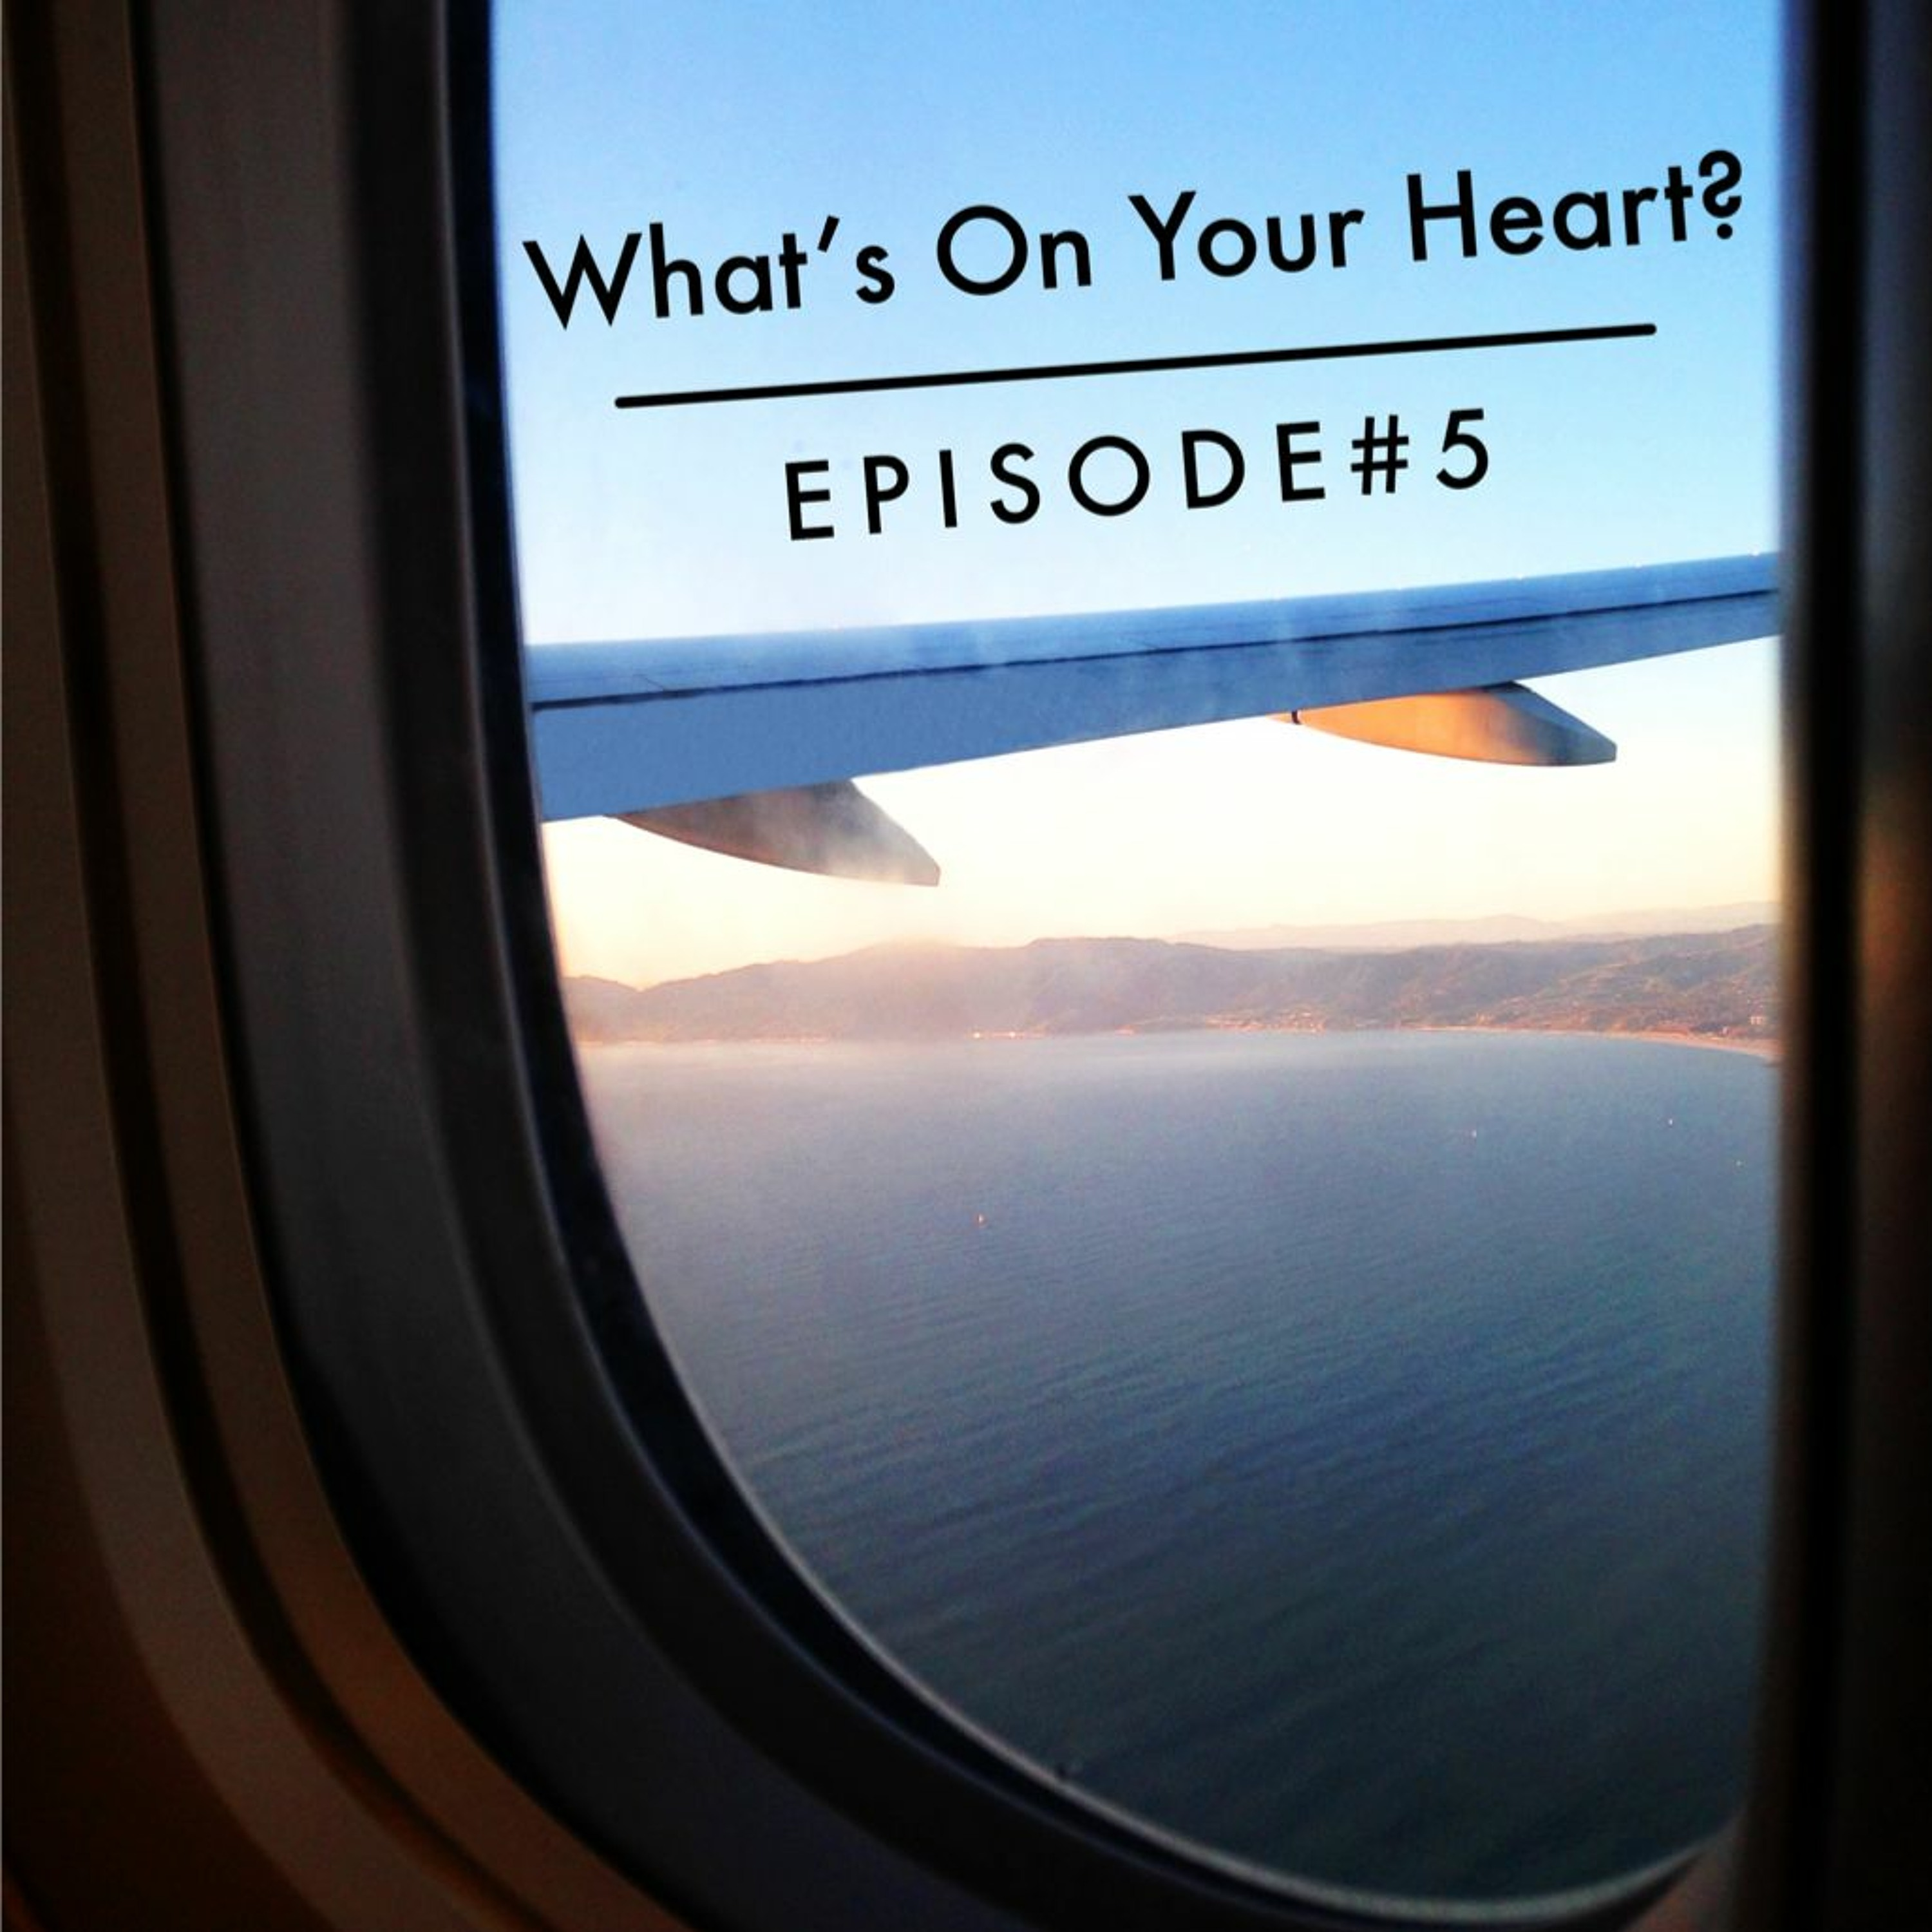 Episode 5 - What's On Your Heart?